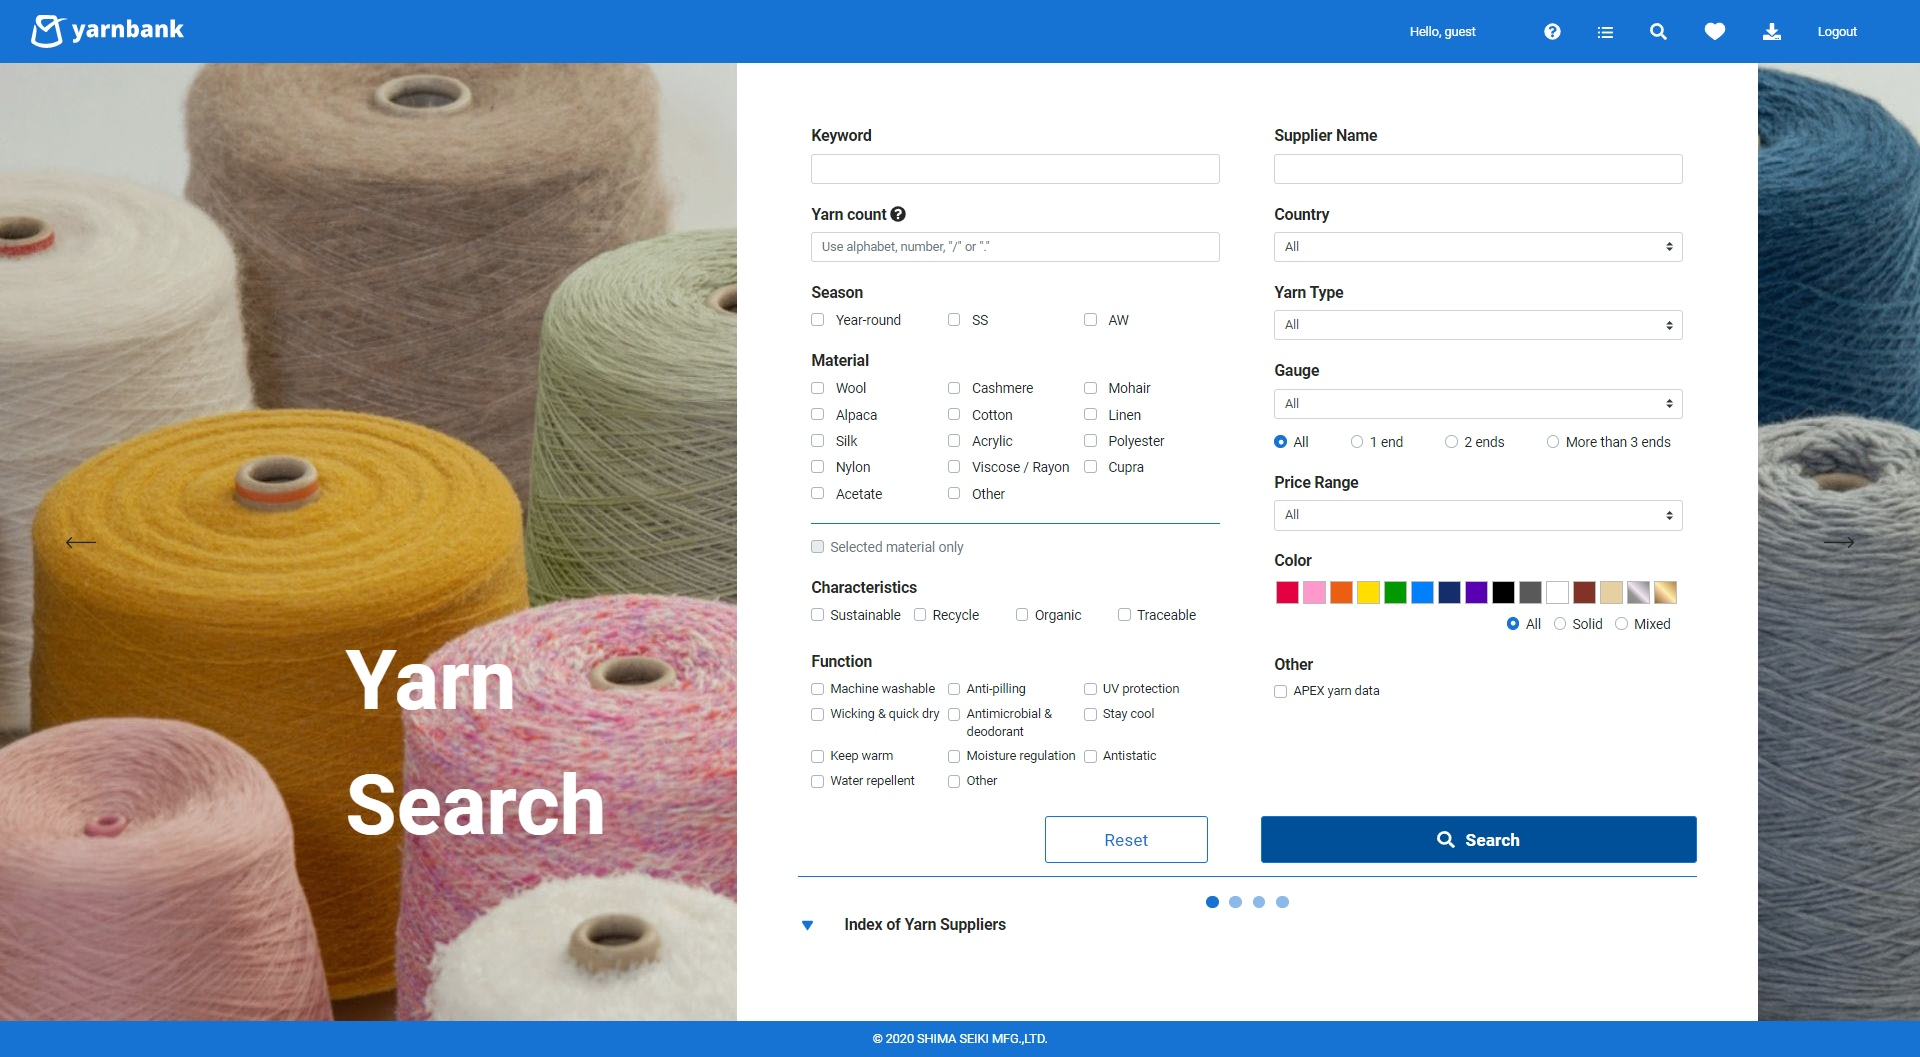 With yarnbank, the entire supply chain from yarn companies and apparel companies to knit manufacturers can be connected digitally. © Shima Seiki.